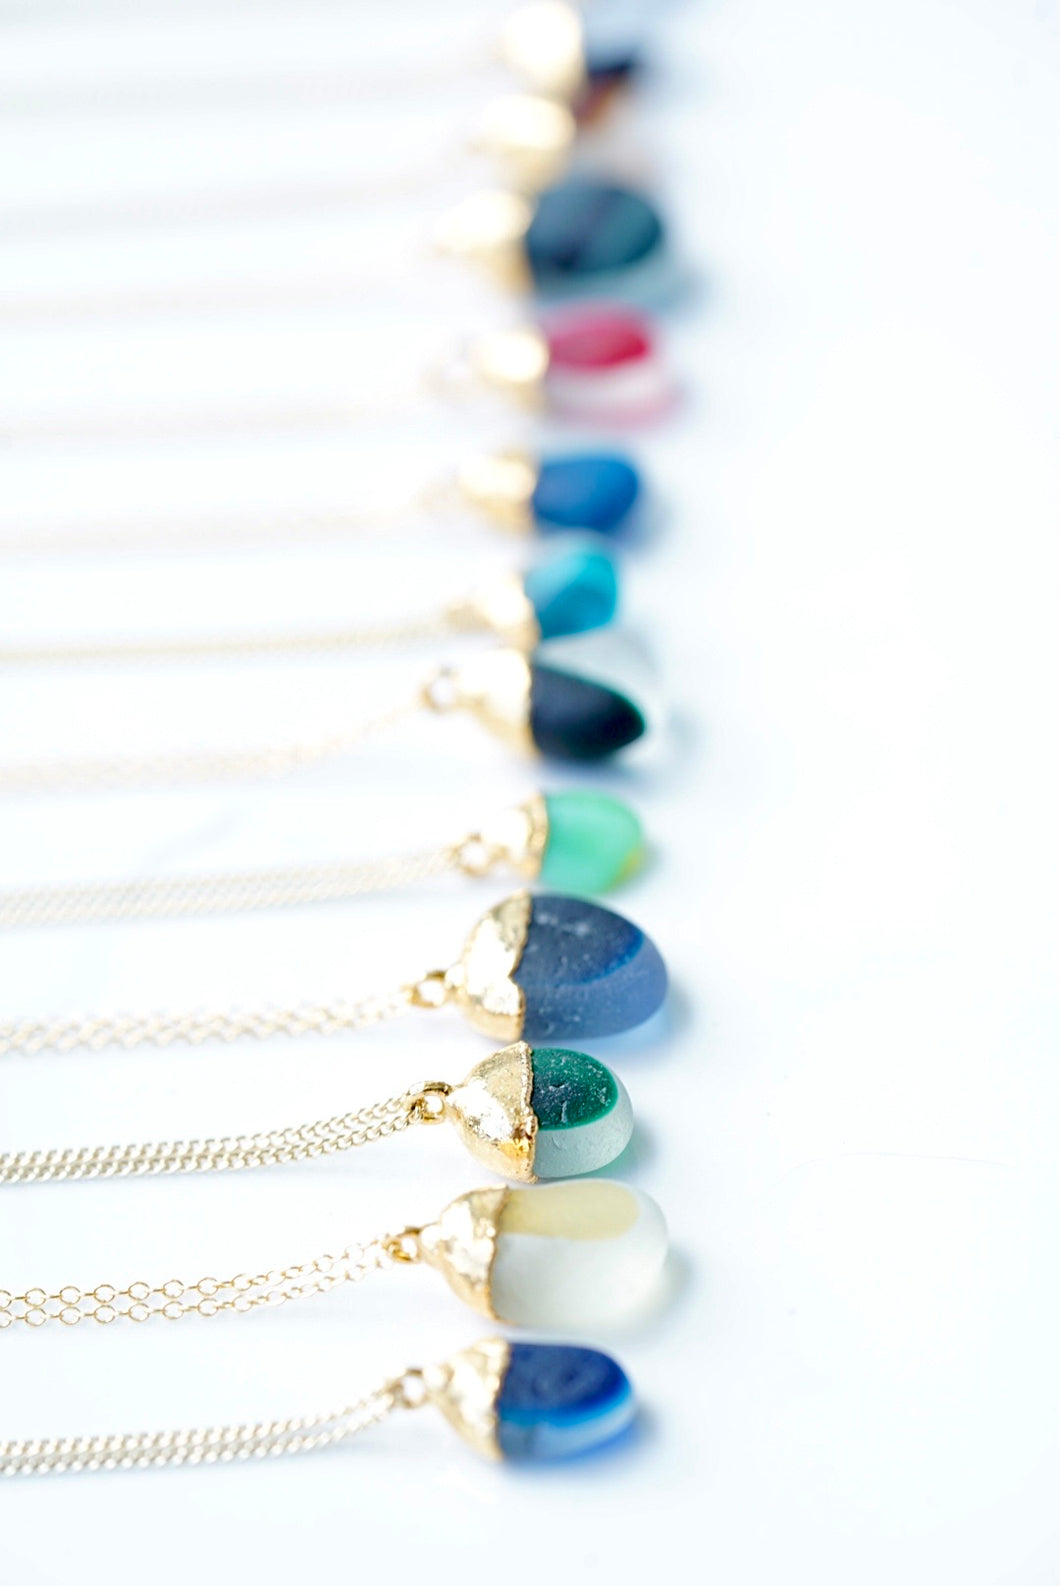 Rise Hawai'i x Seaham Sparkle Sea Glass Necklace